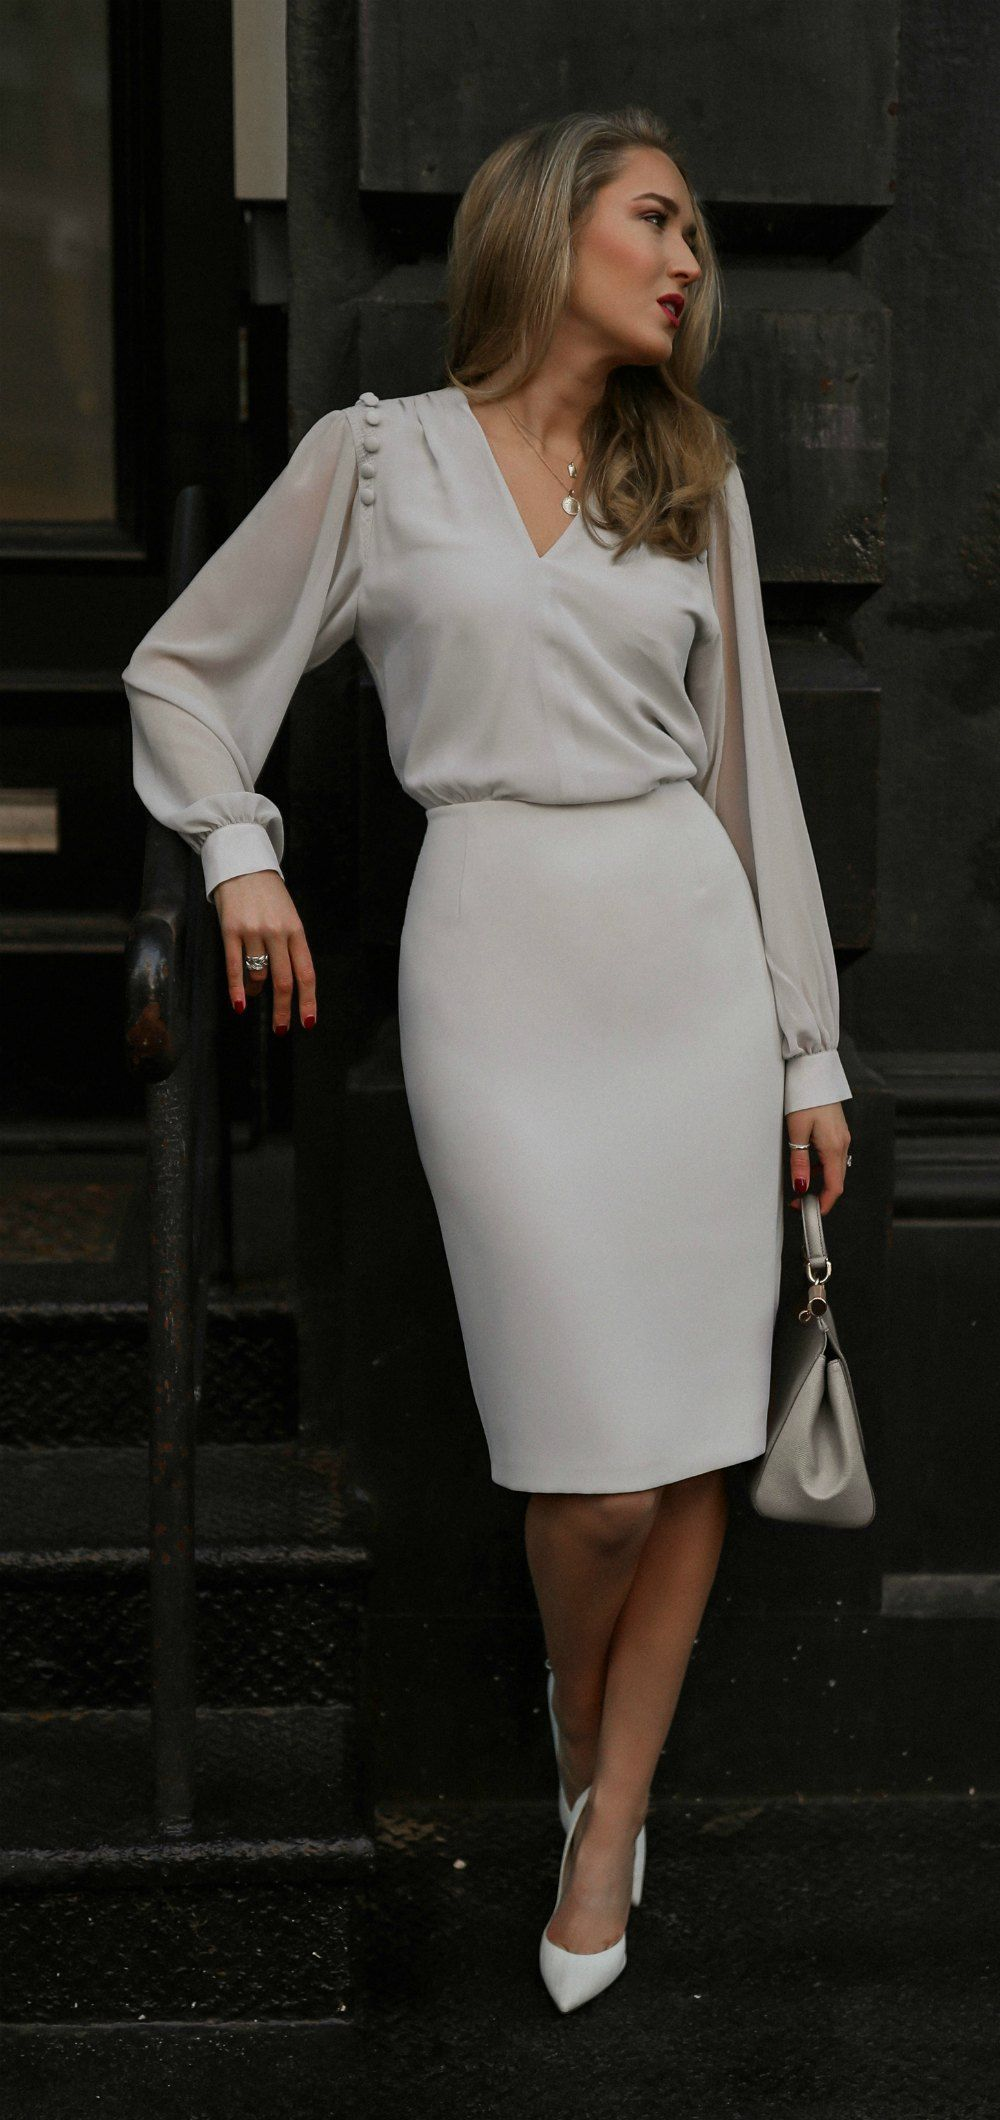 Day 12 Job Interview Pale Grey Button Detail V Neck Midi Dress With Long Sheer Sleeves Grey Suede Pointed Toe Pumps G Classy Dress Fashion Trendy Dresses [ 2120 x 1000 Pixel ]